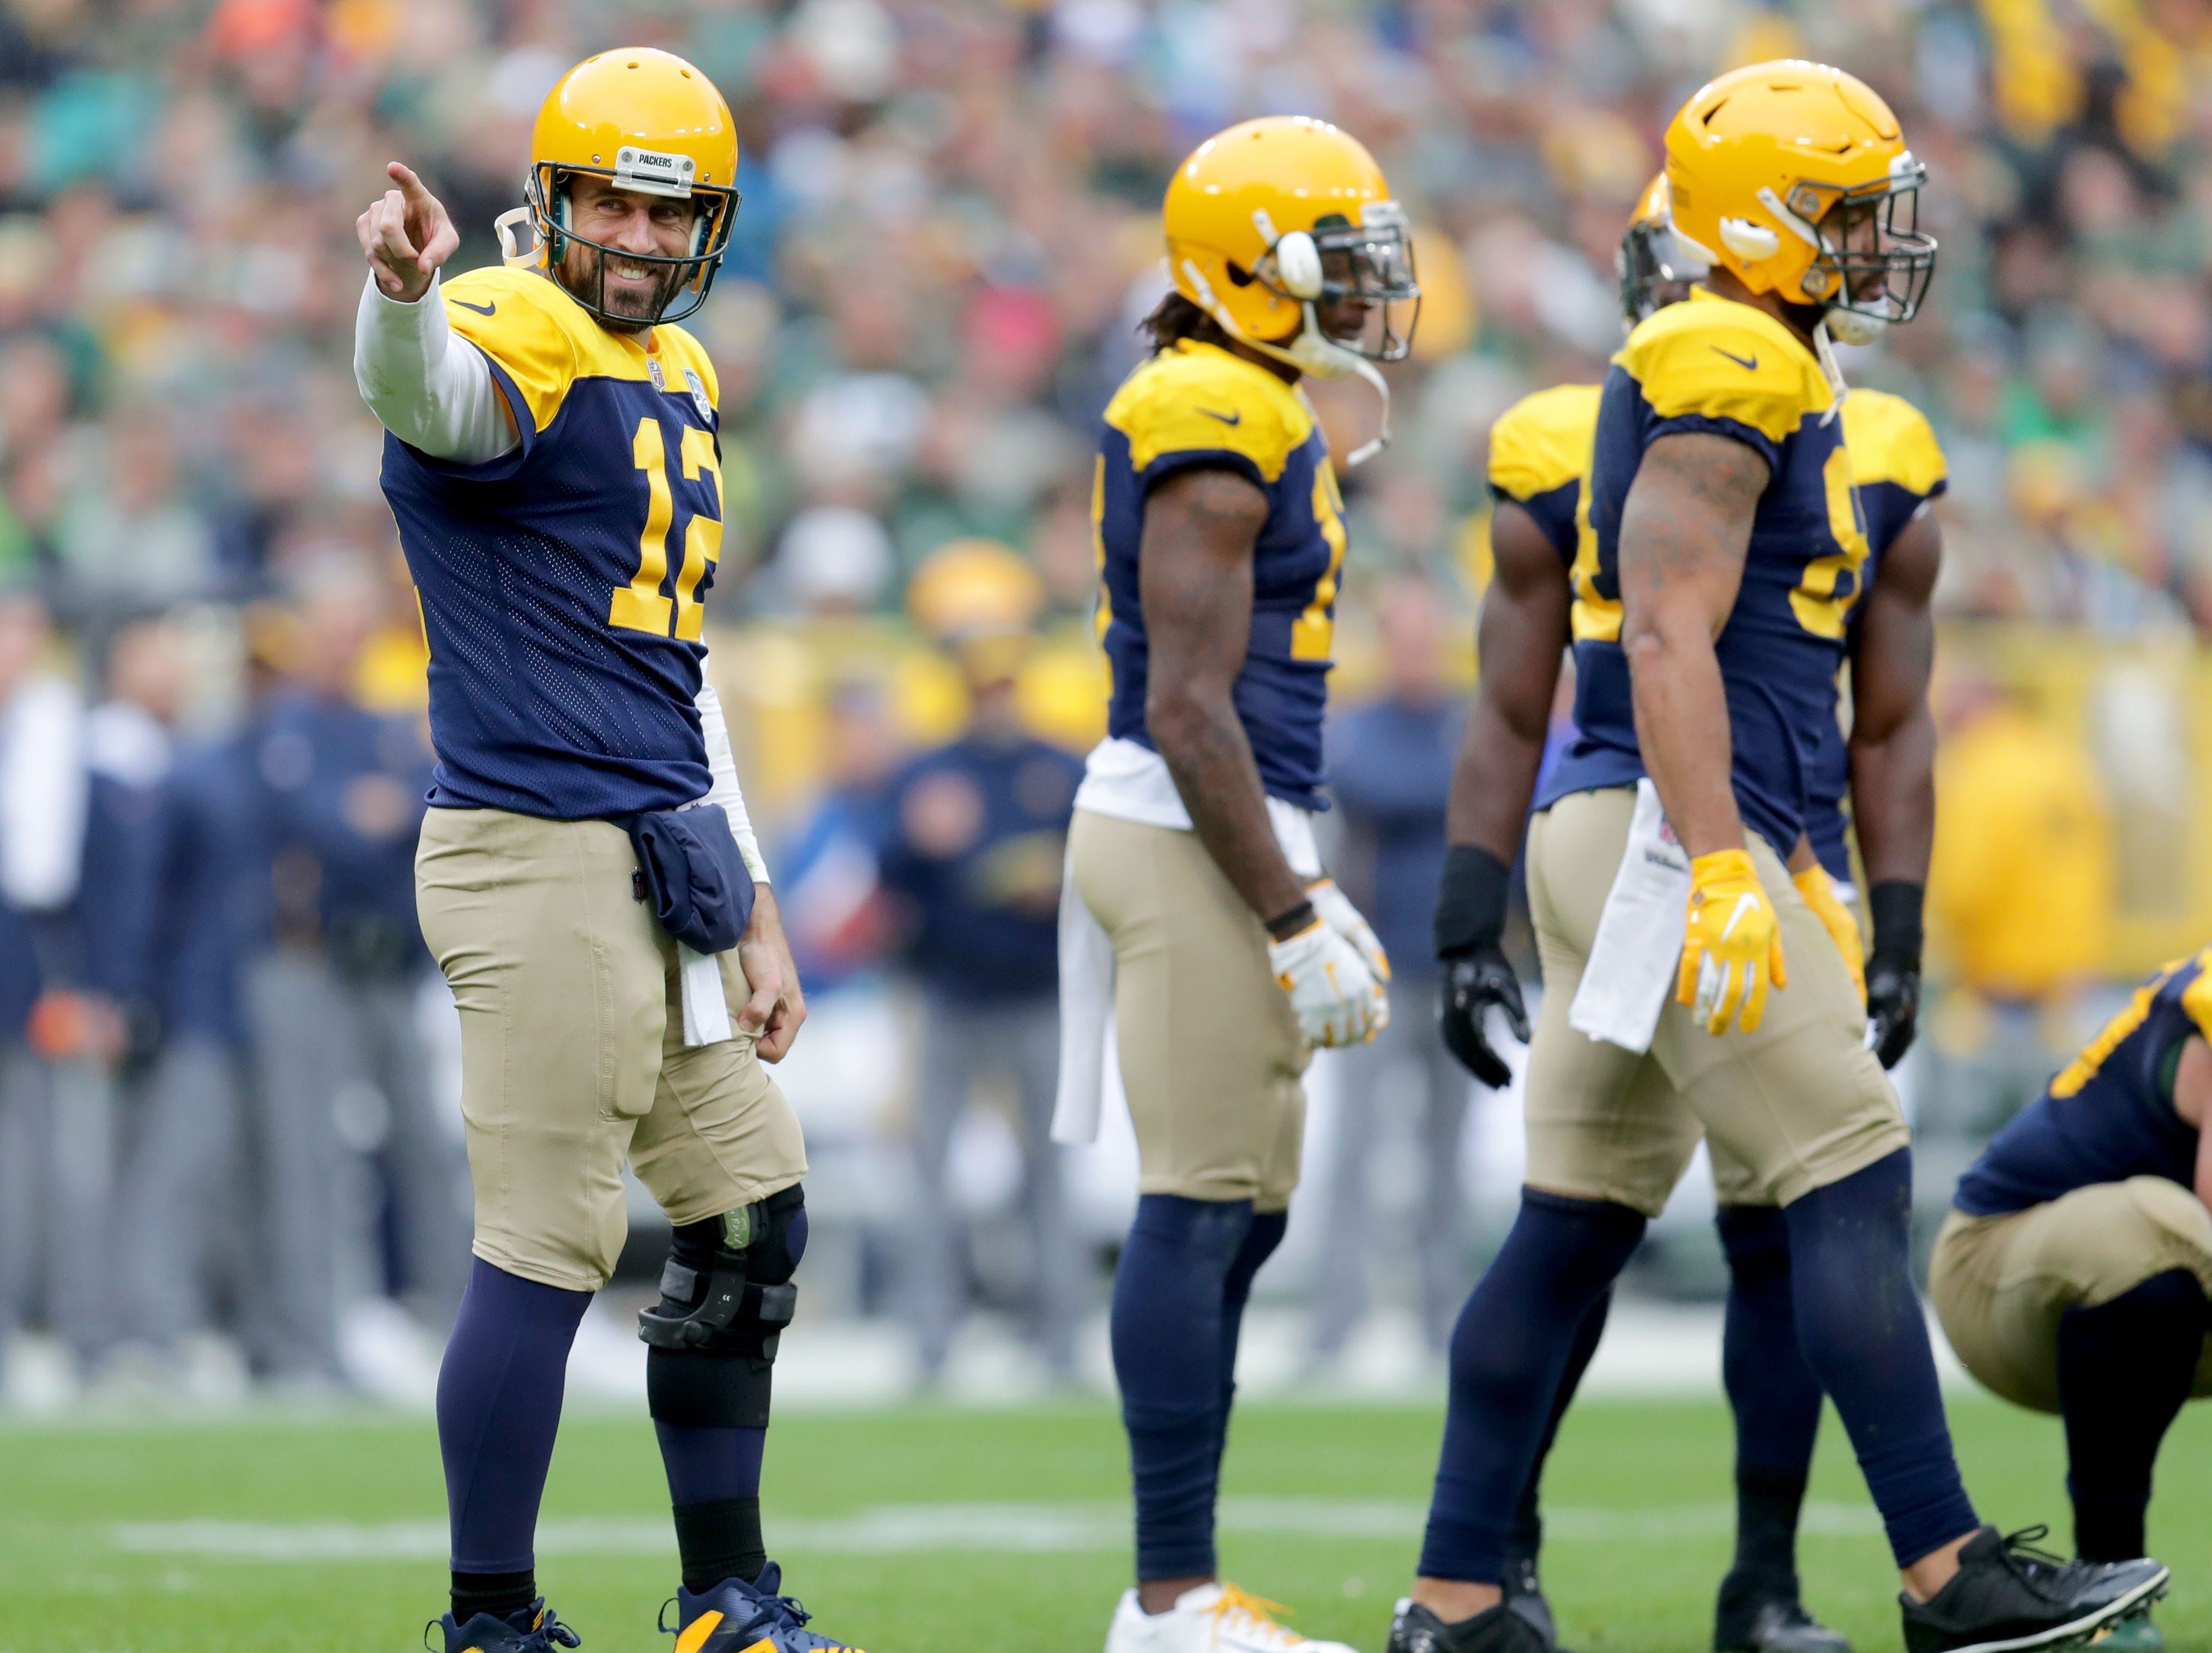 Green Bay Packers quarterback Aaron Rodgers (12) looks to a group of fans dressed as monks in honor of the Dalai Lama since Aaron Rodgers made a trip to India to meet the  Dalai Lama in April of this year. during the 4th quarter of the Green Bay Packers 22-0 win against the Buffalo Bills at Lambeau Field in Green Bay, Wis. on Sunday, September 30, 2018. Mike De Sisti /USA TODAY NETWORK-Wisconsin